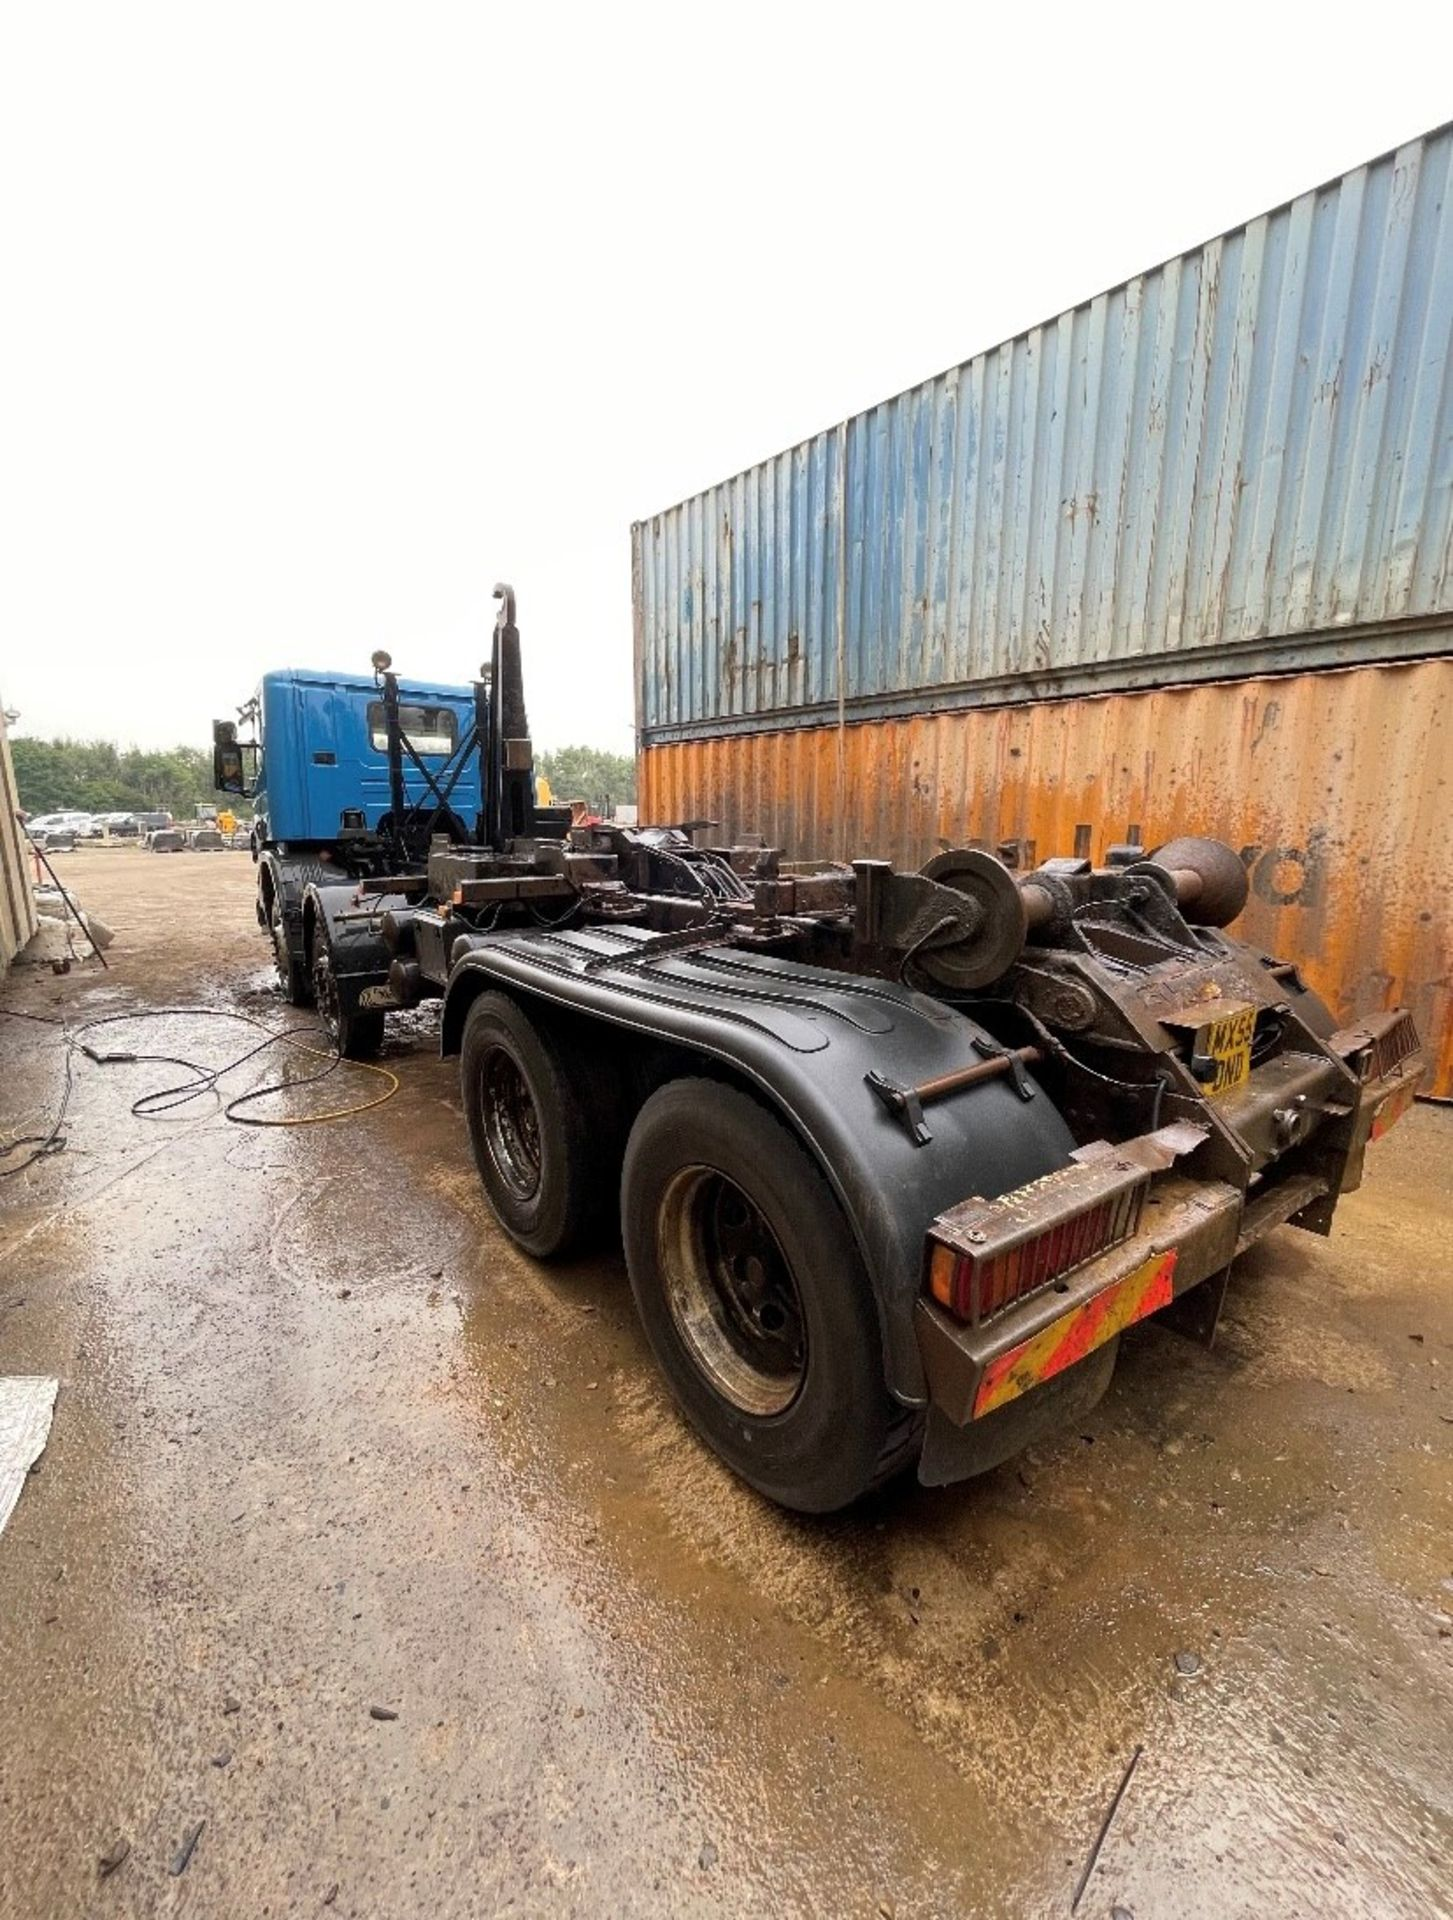 Scania P420 8x4 Hook Lift Truck, registration no. MX55 DND, date first registered 09/2005, indicated - Image 5 of 5